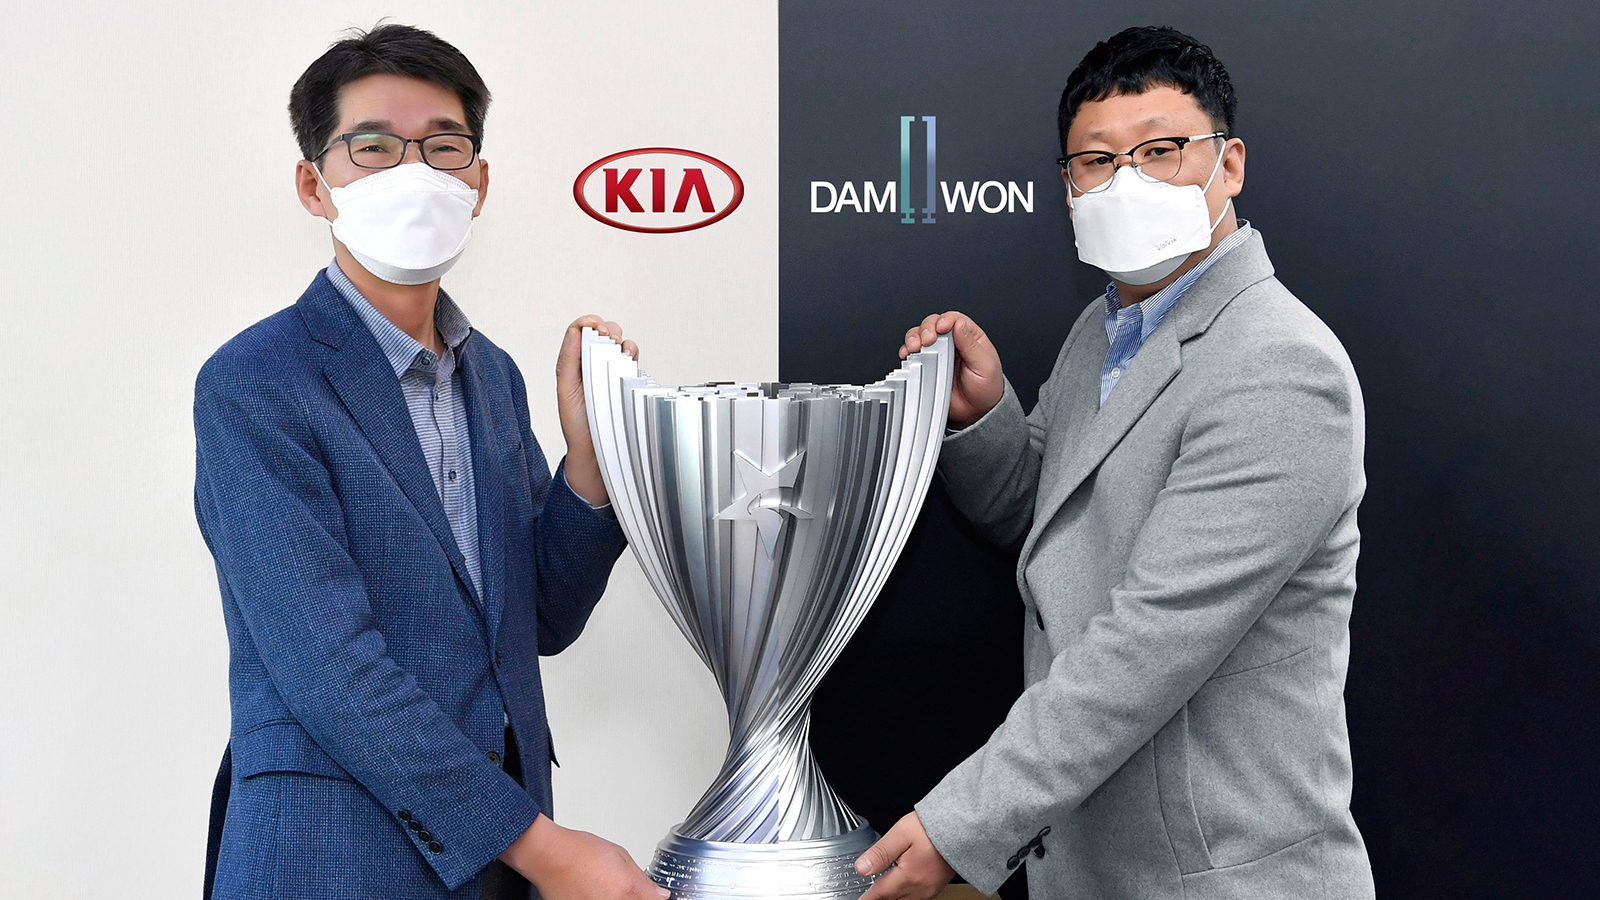 League of Legends champs Damwon Gaming has partnered with KIA Motors.